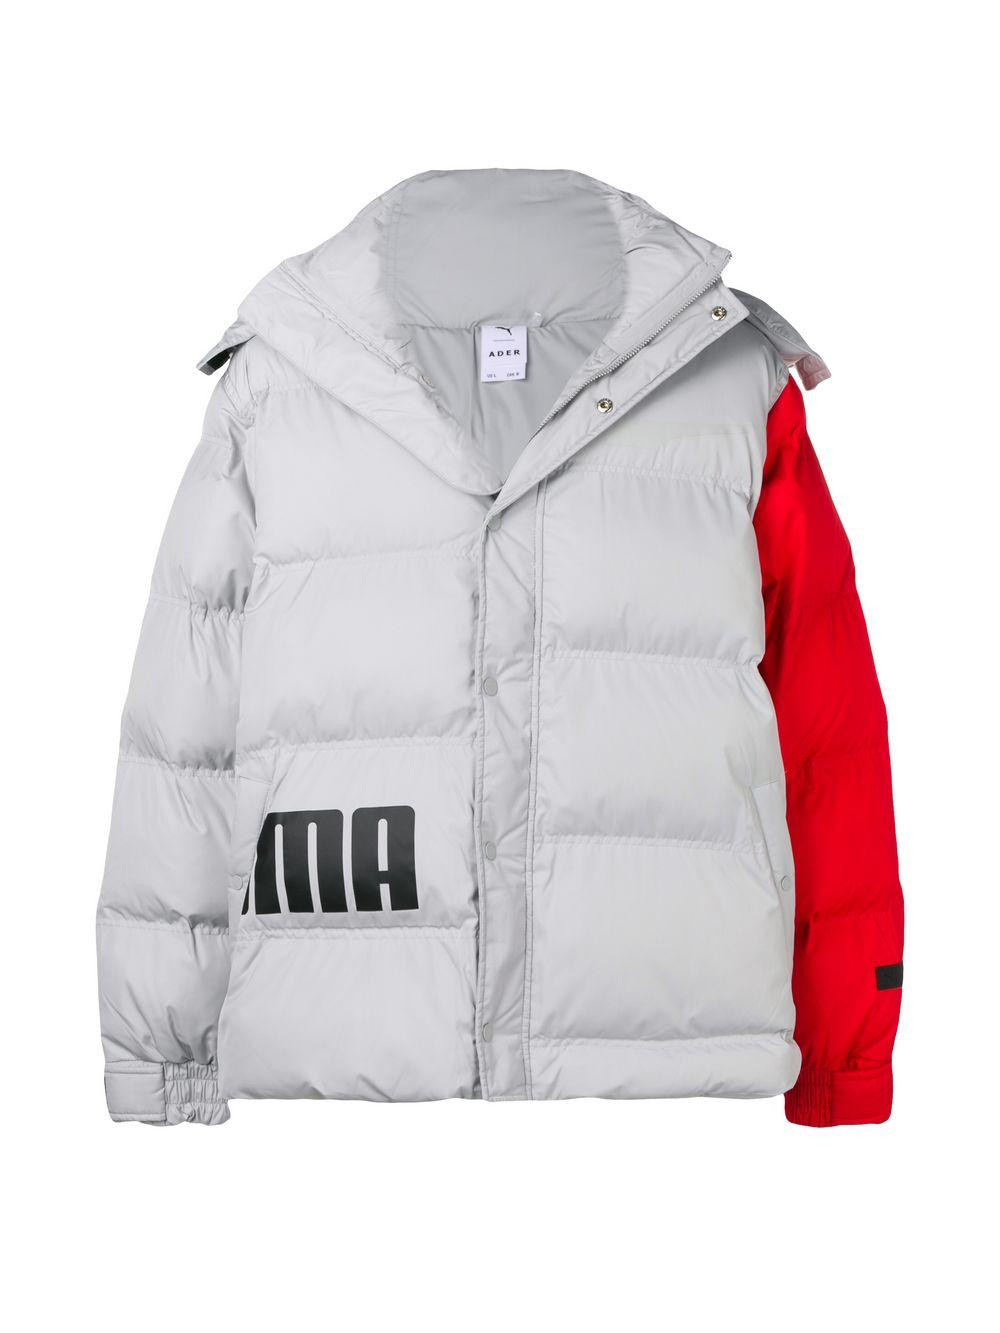 1dc012a97e2d Lyst - PUMA X Ader Error Padded Jacket in Gray for Men - Save 26%